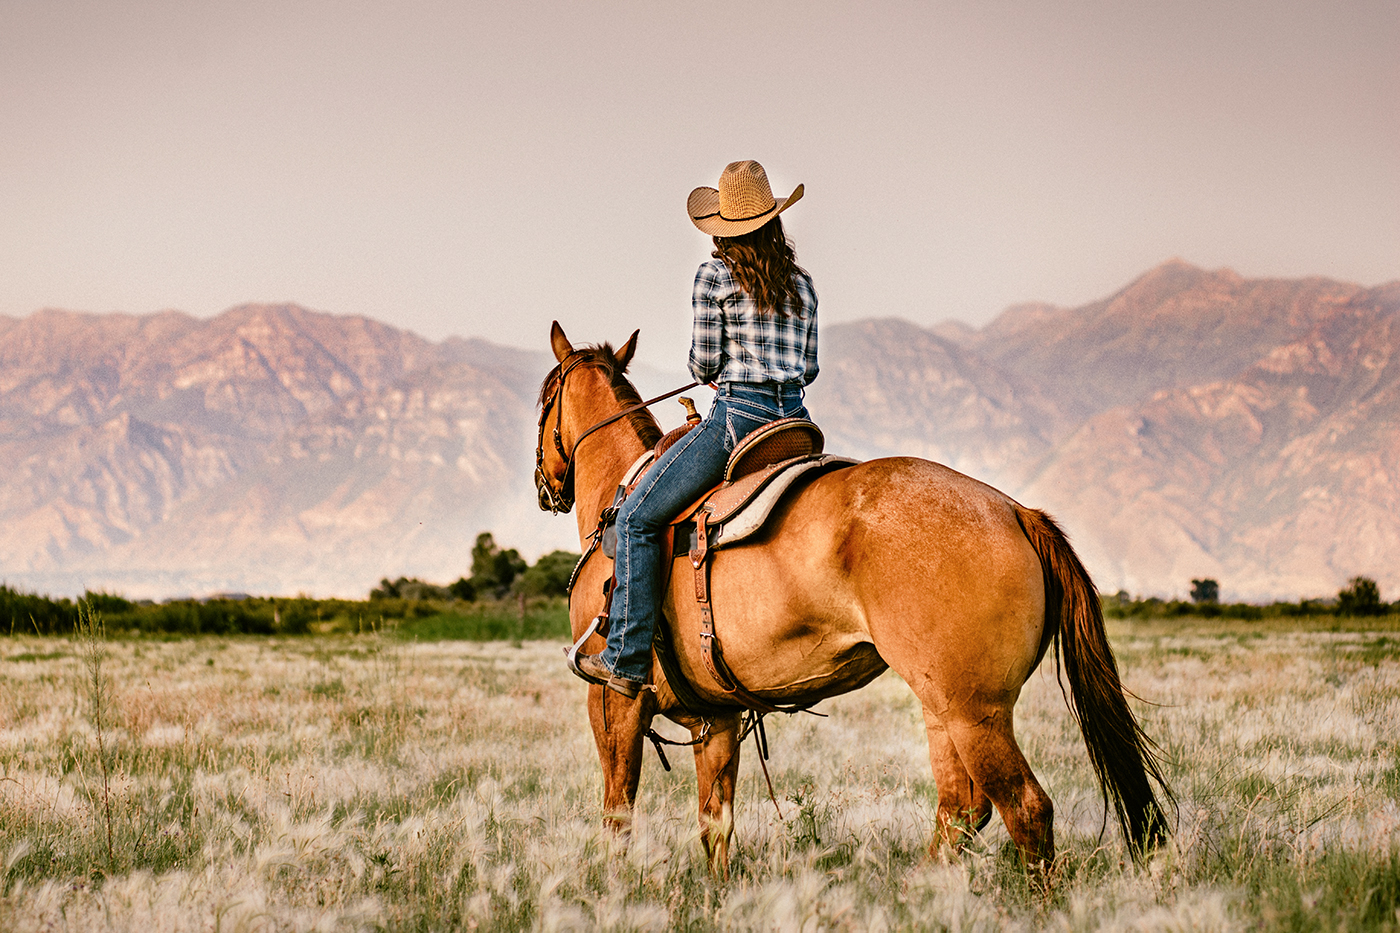 Cowgirl riding horse with mountain backdrop